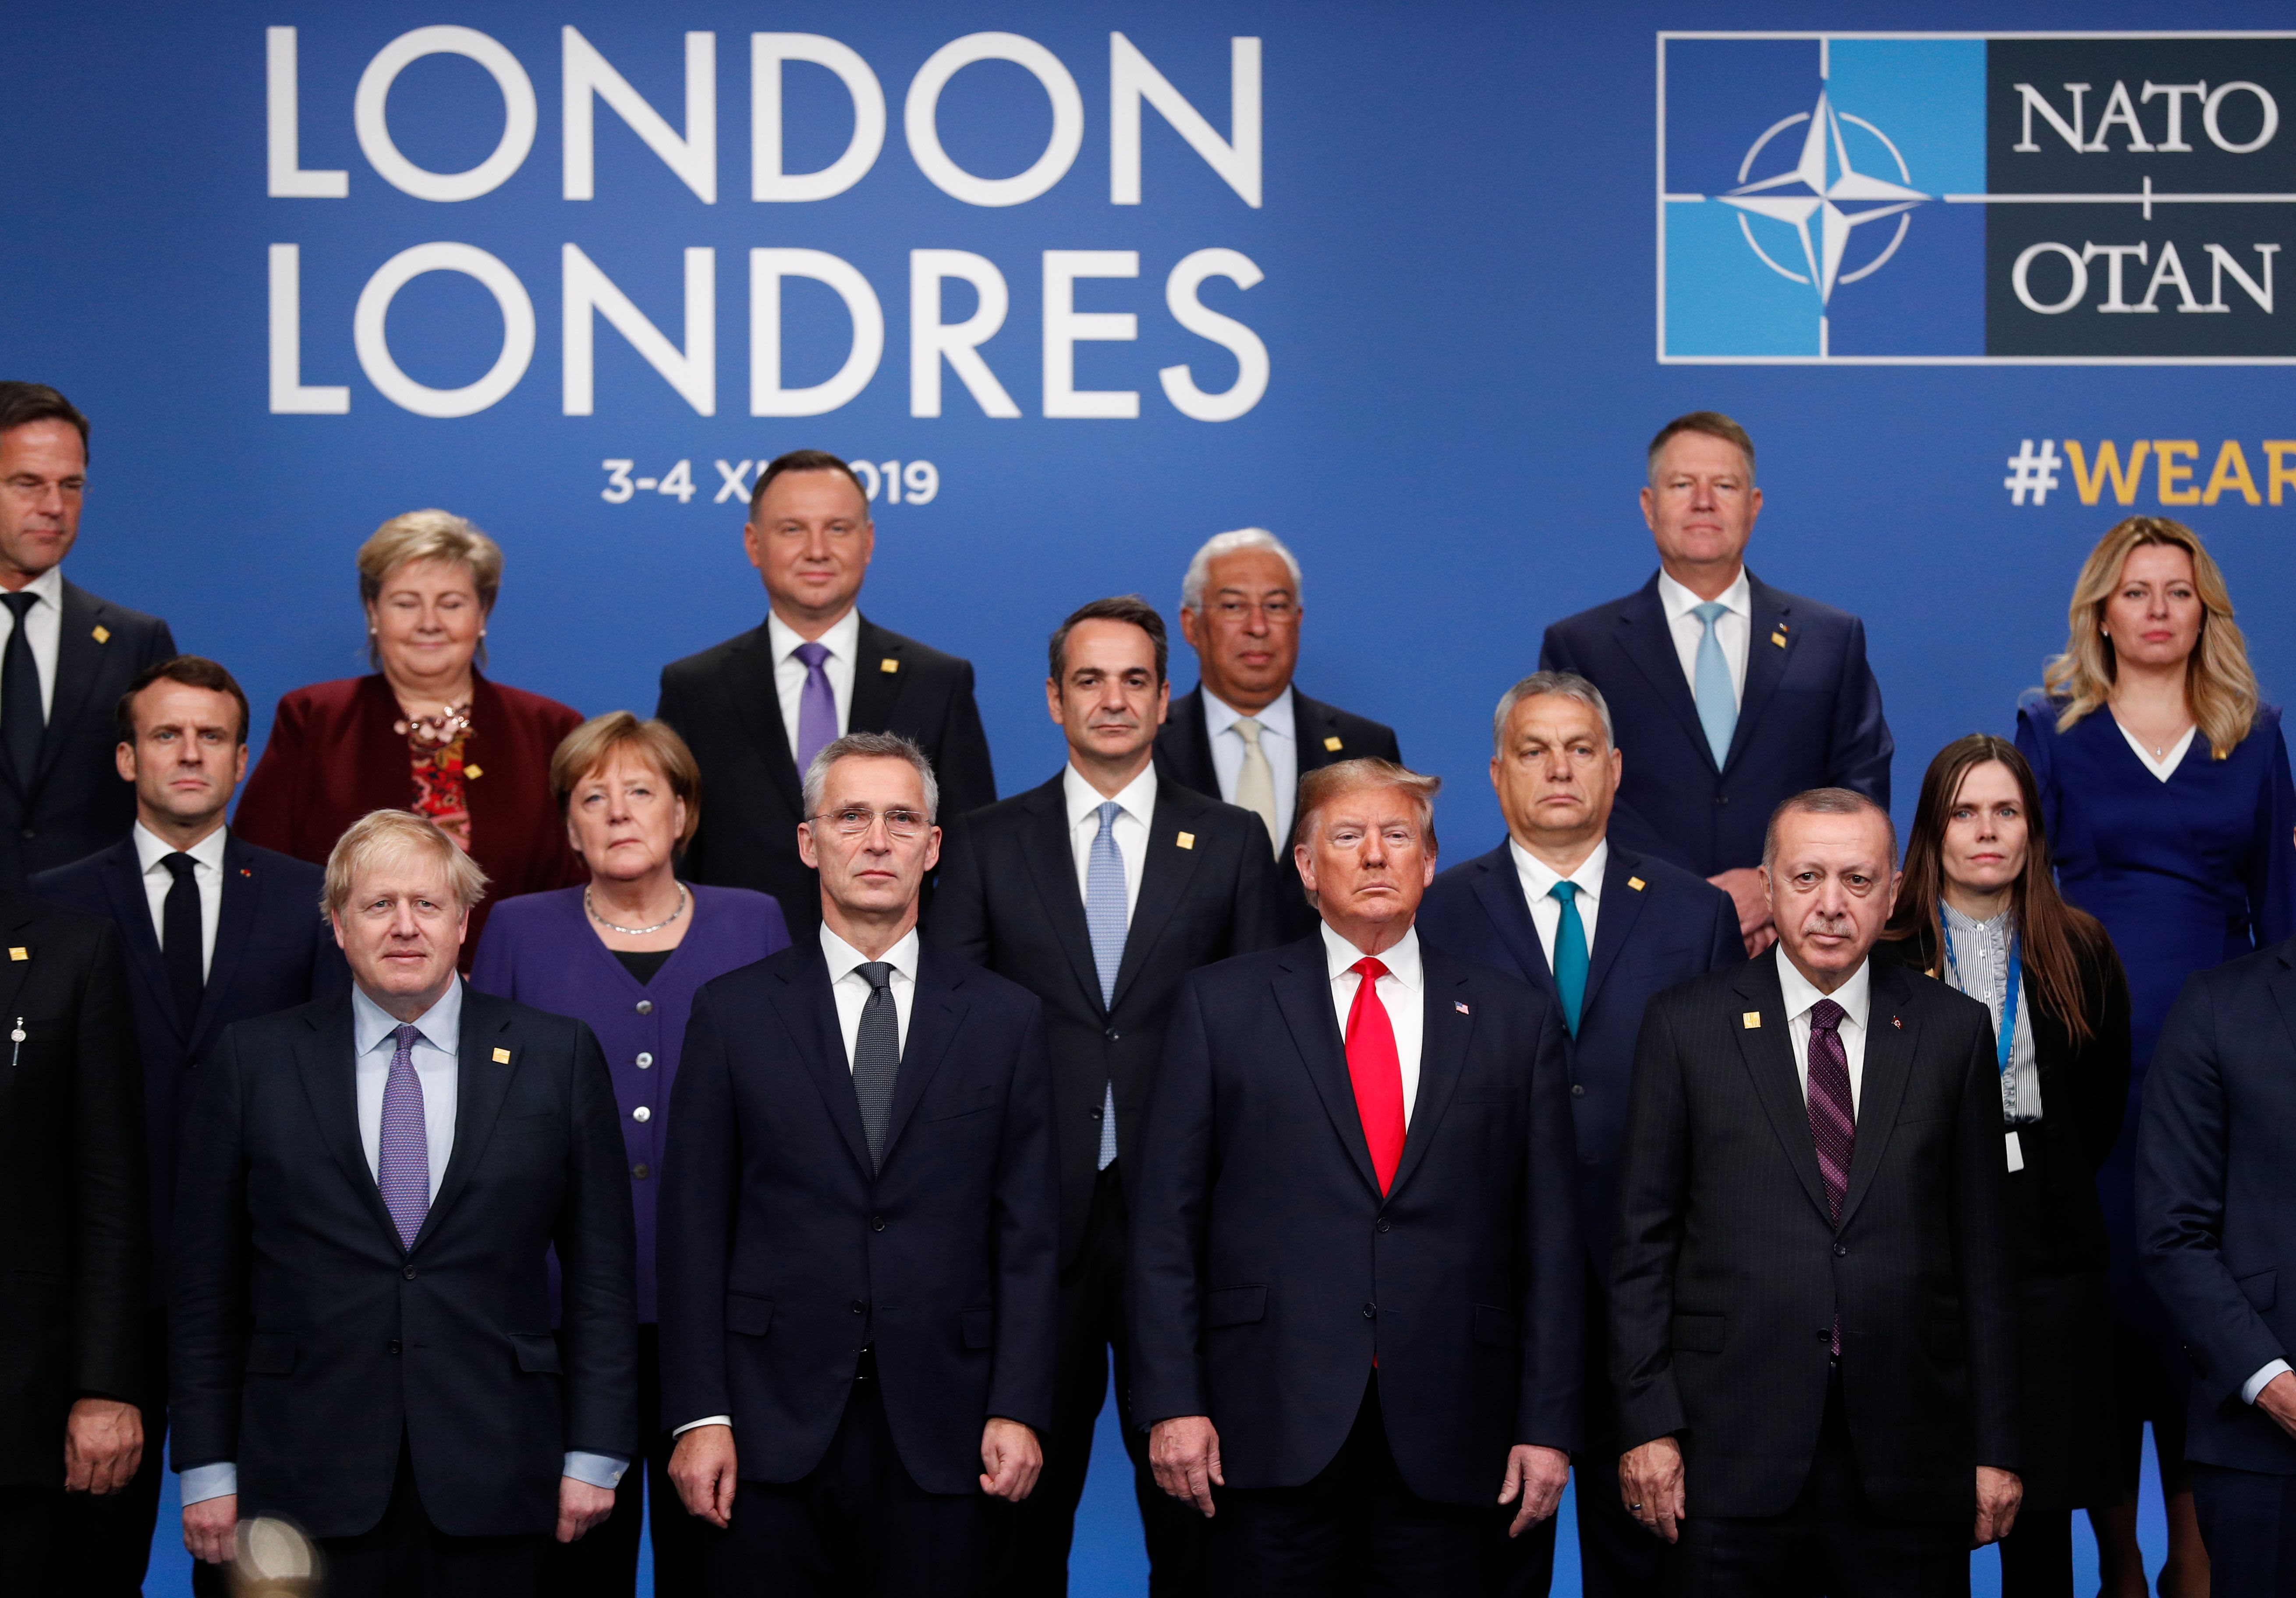 NATO needs to change to survive, analysts say